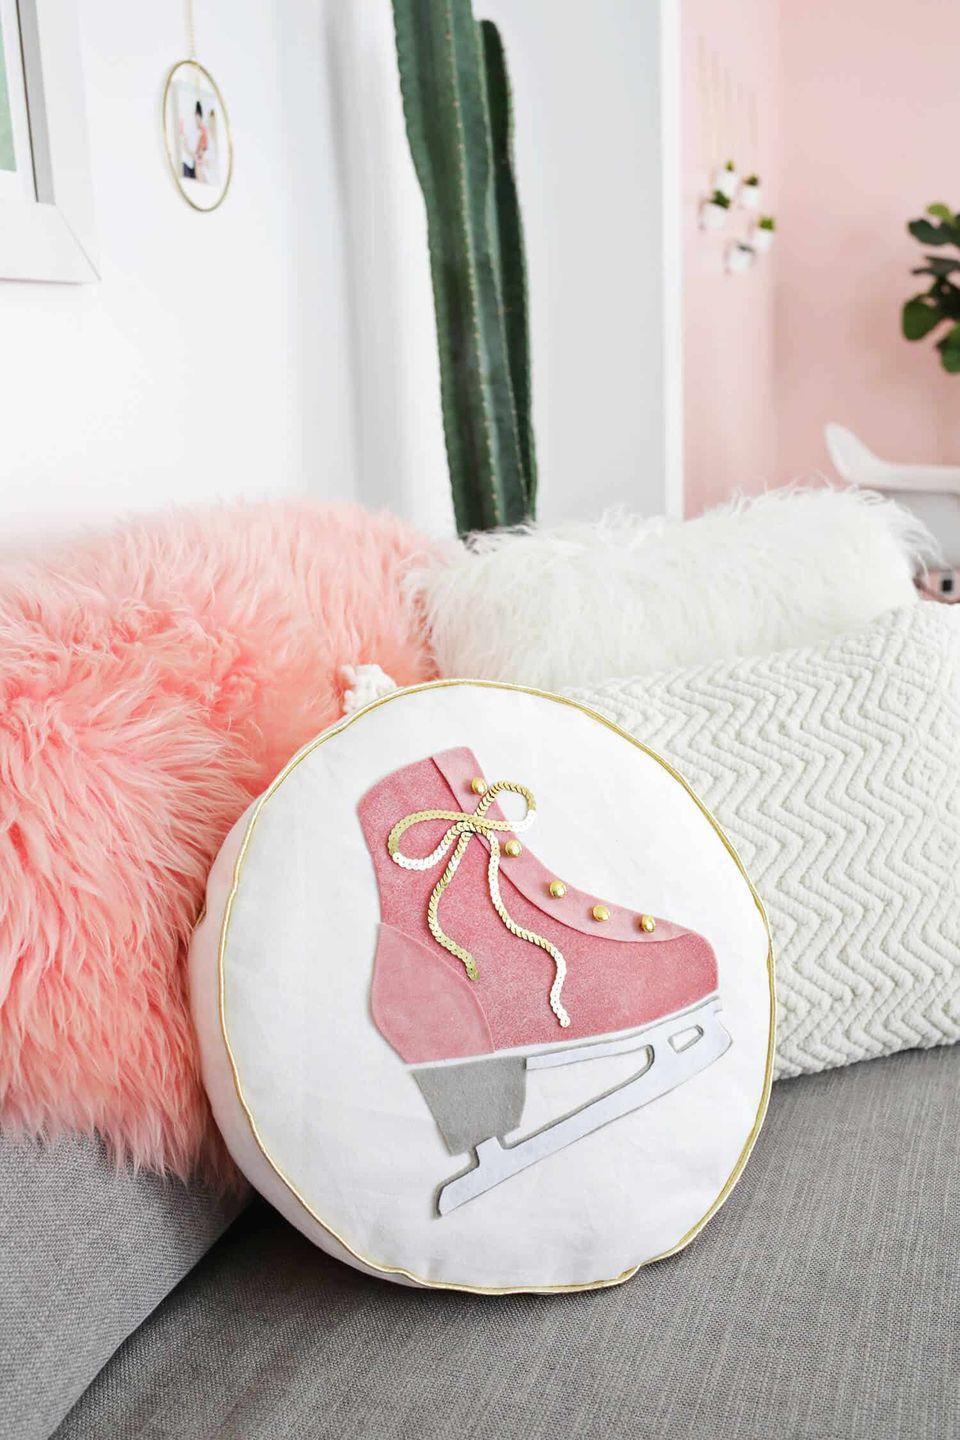 """<p>Crafted with sparkling sequins and luxe velvet fabric, this piece is both bright and cozy, which is just what we need in our homes come January.</p><p><strong>Get the tutorial at <a href=""""https://abeautifulmess.com/2017/11/ice-skate-pillow-diy.html"""" rel=""""nofollow noopener"""" target=""""_blank"""" data-ylk=""""slk:A Beautiful Mess"""" class=""""link rapid-noclick-resp"""">A Beautiful Mess</a>.</strong></p><p><strong><a class=""""link rapid-noclick-resp"""" href=""""https://www.amazon.com/PH-PandaHall-100yards-Paillette-Embellish/dp/B07NC5XYFC/ref=sr_1_2?dchild=1&keywords=GOLD+SEQUIN+SINGLE&qid=1600879573&s=arts-crafts&sr=1-2&tag=syn-yahoo-20&ascsubtag=%5Bartid%7C10050.g.23489557%5Bsrc%7Cyahoo-us"""" rel=""""nofollow noopener"""" target=""""_blank"""" data-ylk=""""slk:SHOP GOLD SEQUIN SPOOL"""">SHOP GOLD SEQUIN SPOOL</a><br></strong></p>"""